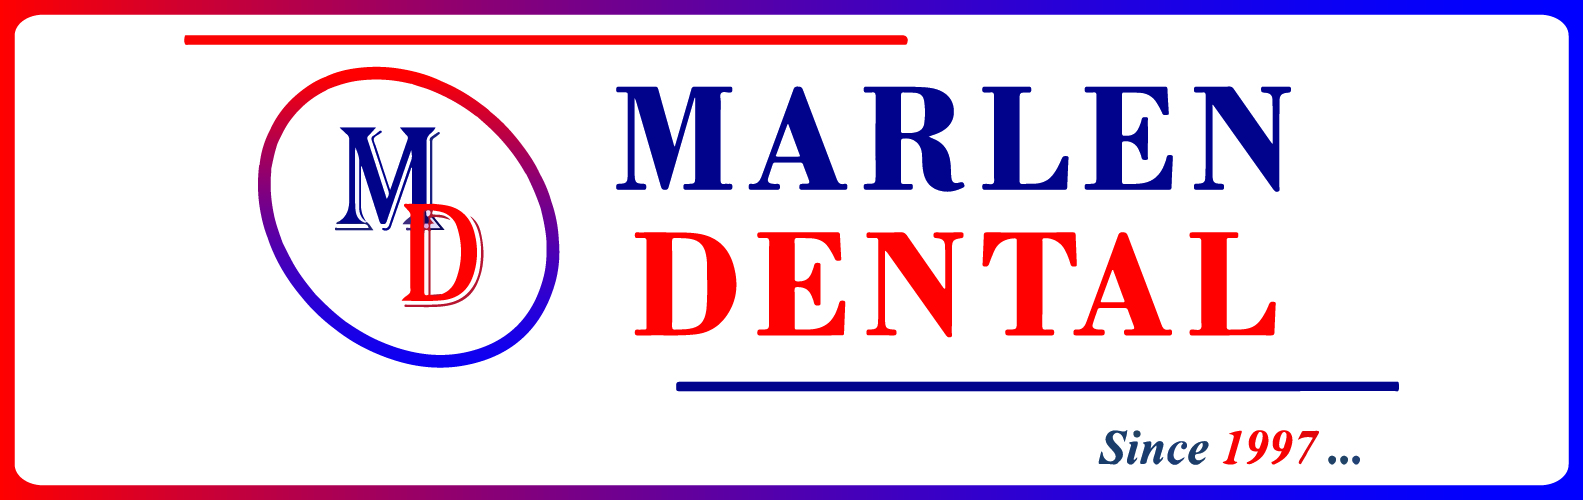 Marlen Dental